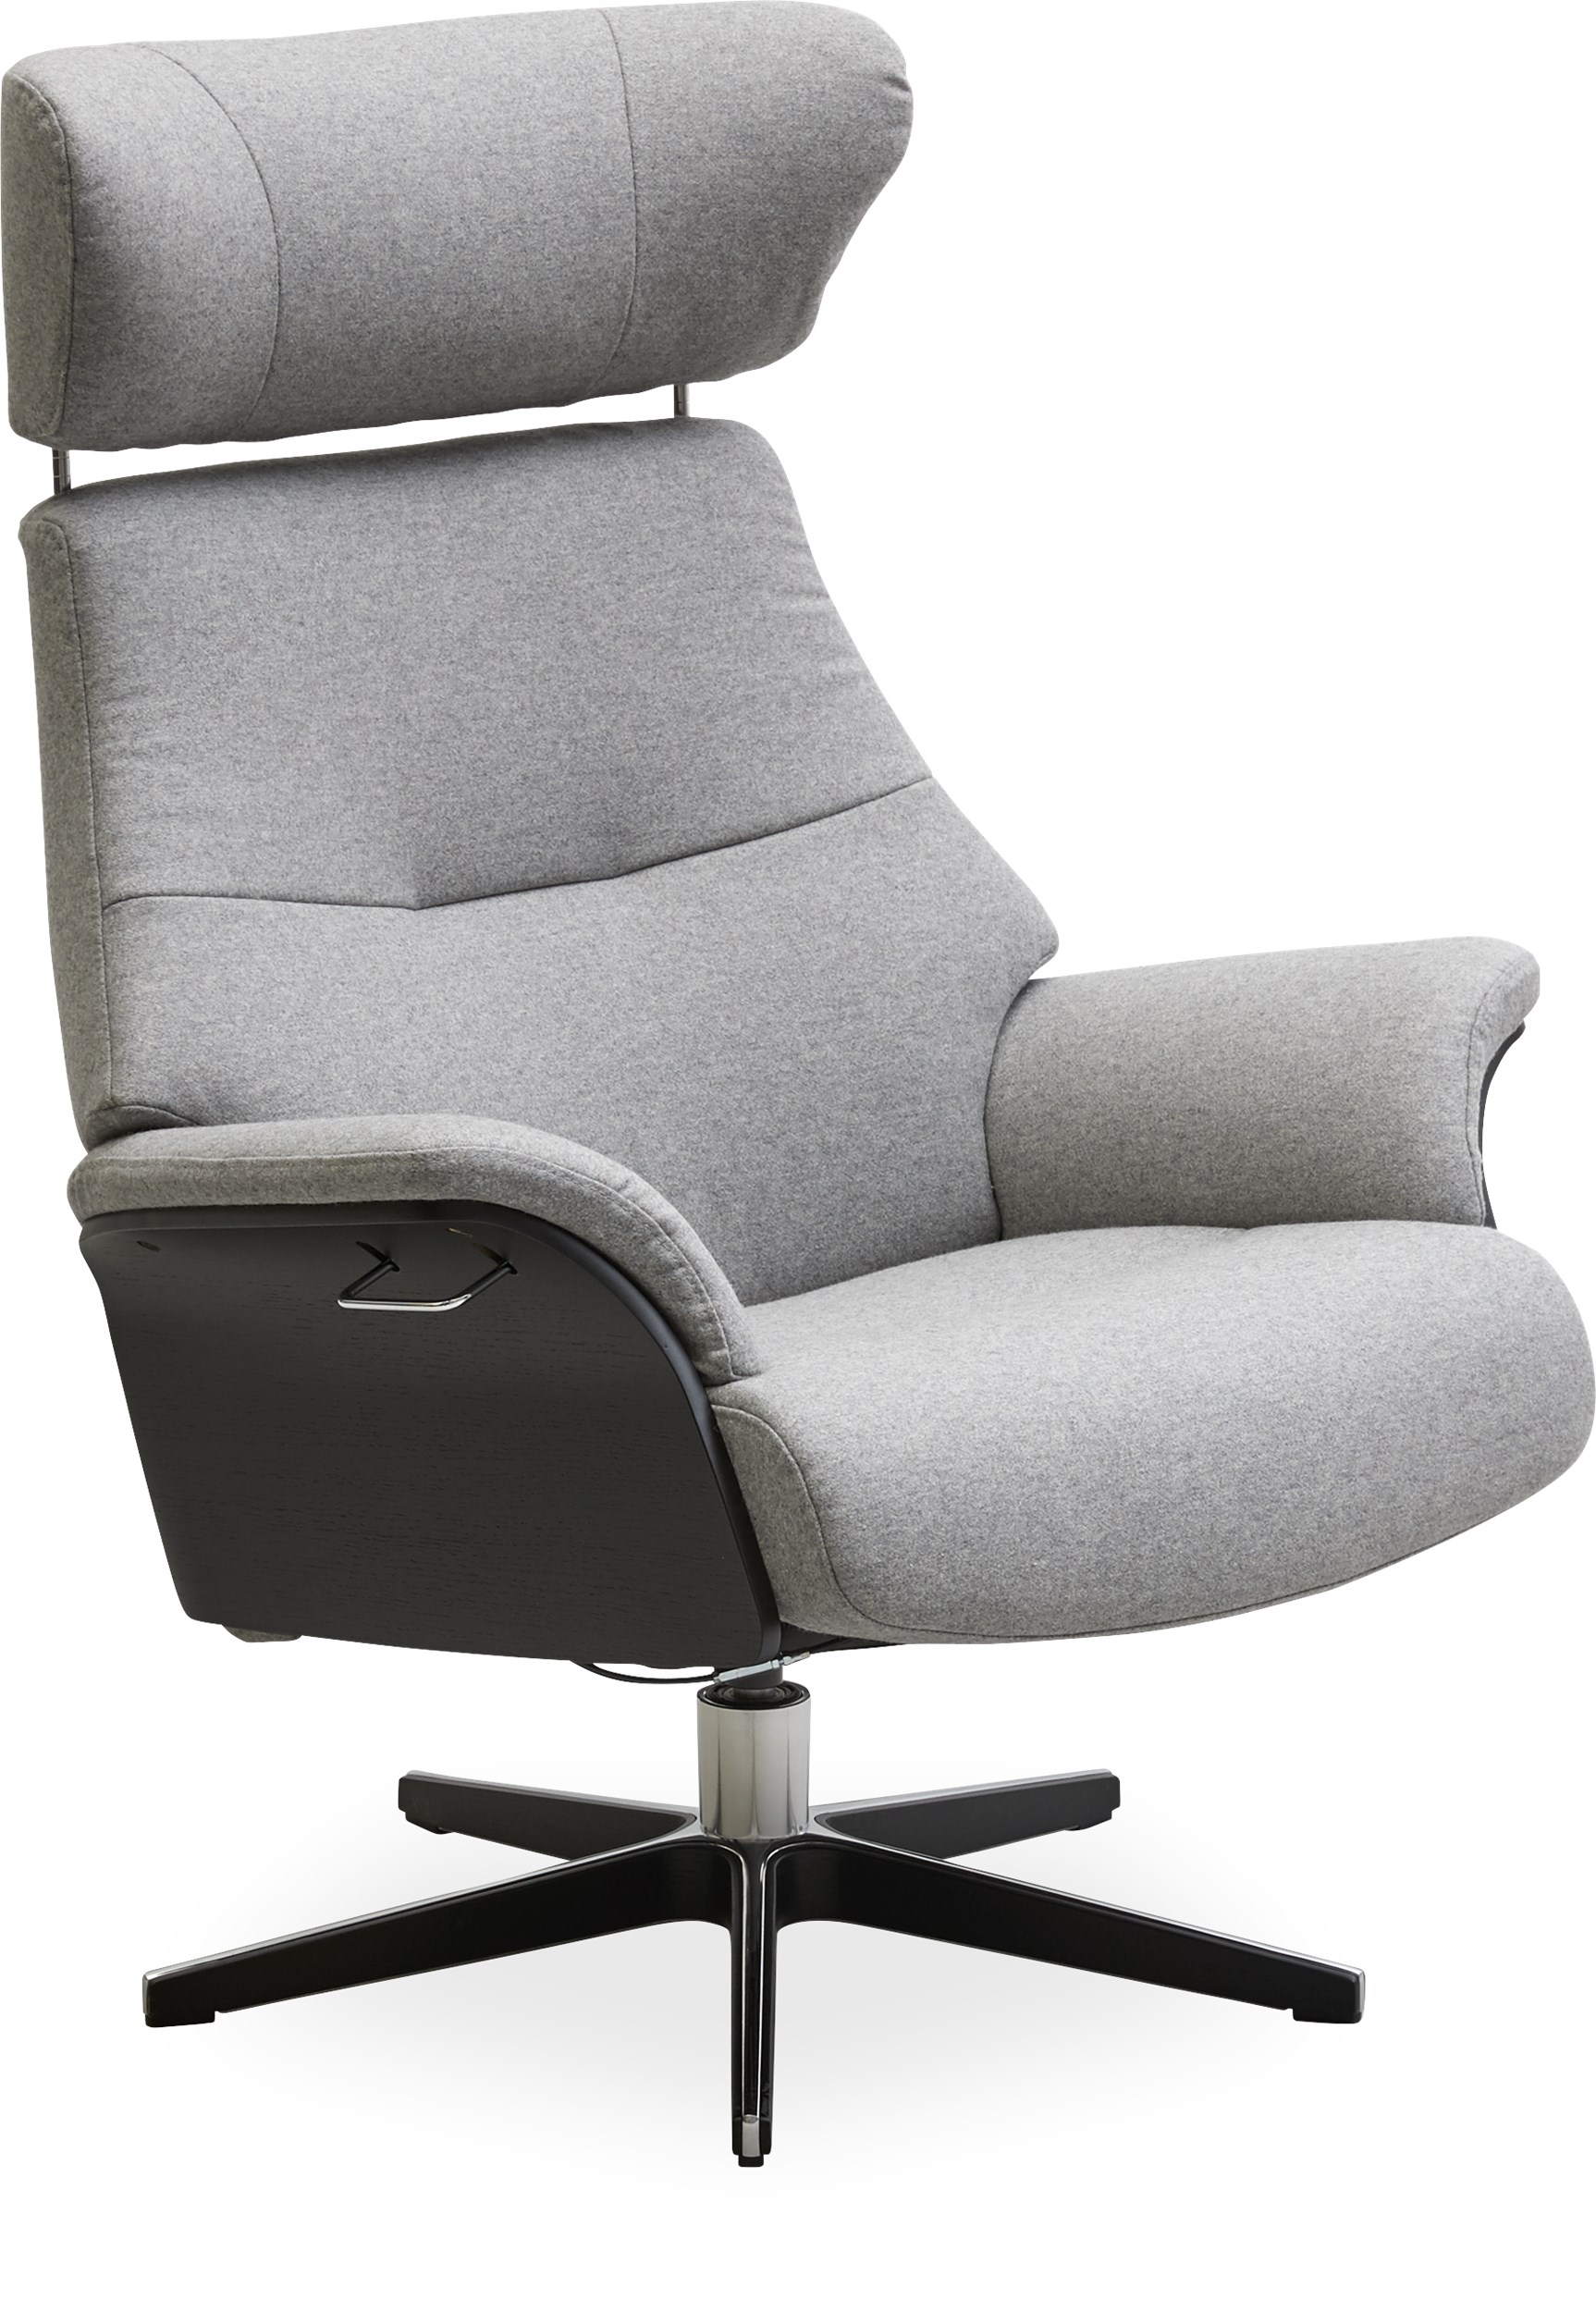 Air Fåtölj - Sheford 1383-72 Light Grey textil, armrest in black-stained oak och fot i aluminium/svartbetsad ek